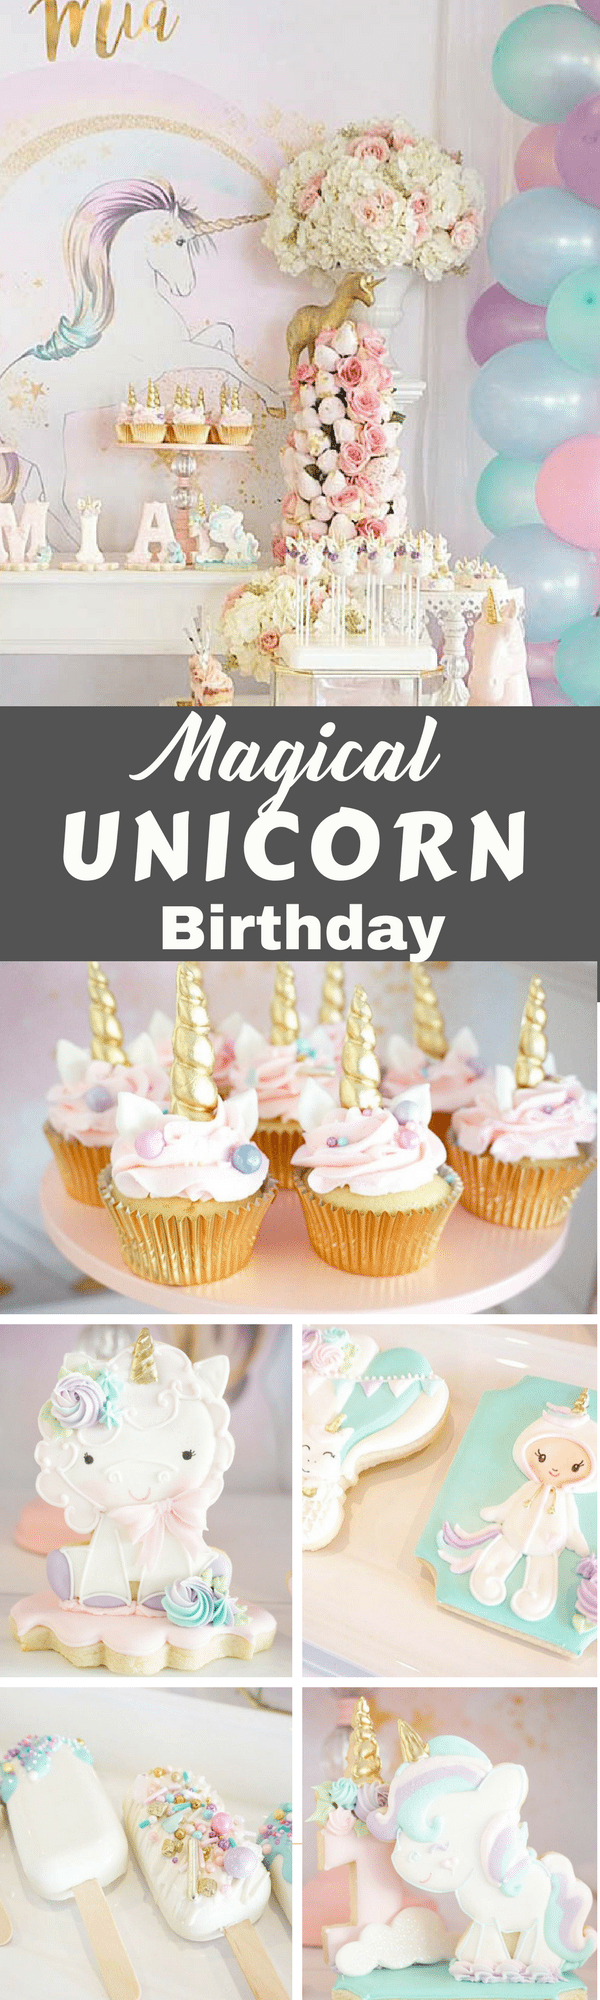 This DARLING pinterest unicorn party wows guests, with a themed cake, decorated unicorn sugar cookies, party decorations and styling.  #unicorn #unicornbirthday #unciornpartyideas #unicorncookies